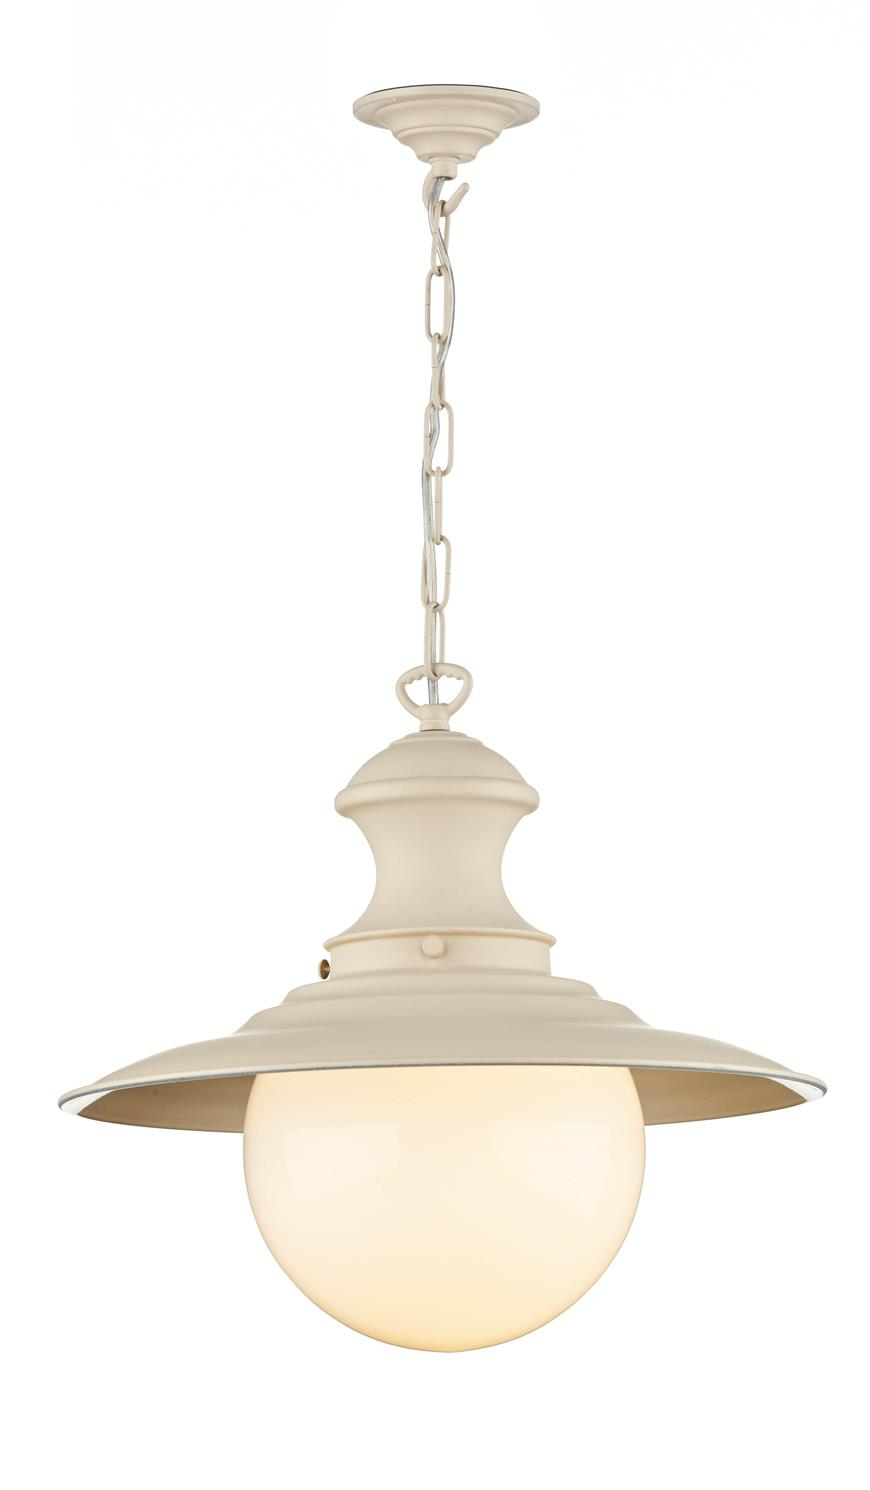 David Hunt Lighting EP33 Station Large Single Pendant in Cream